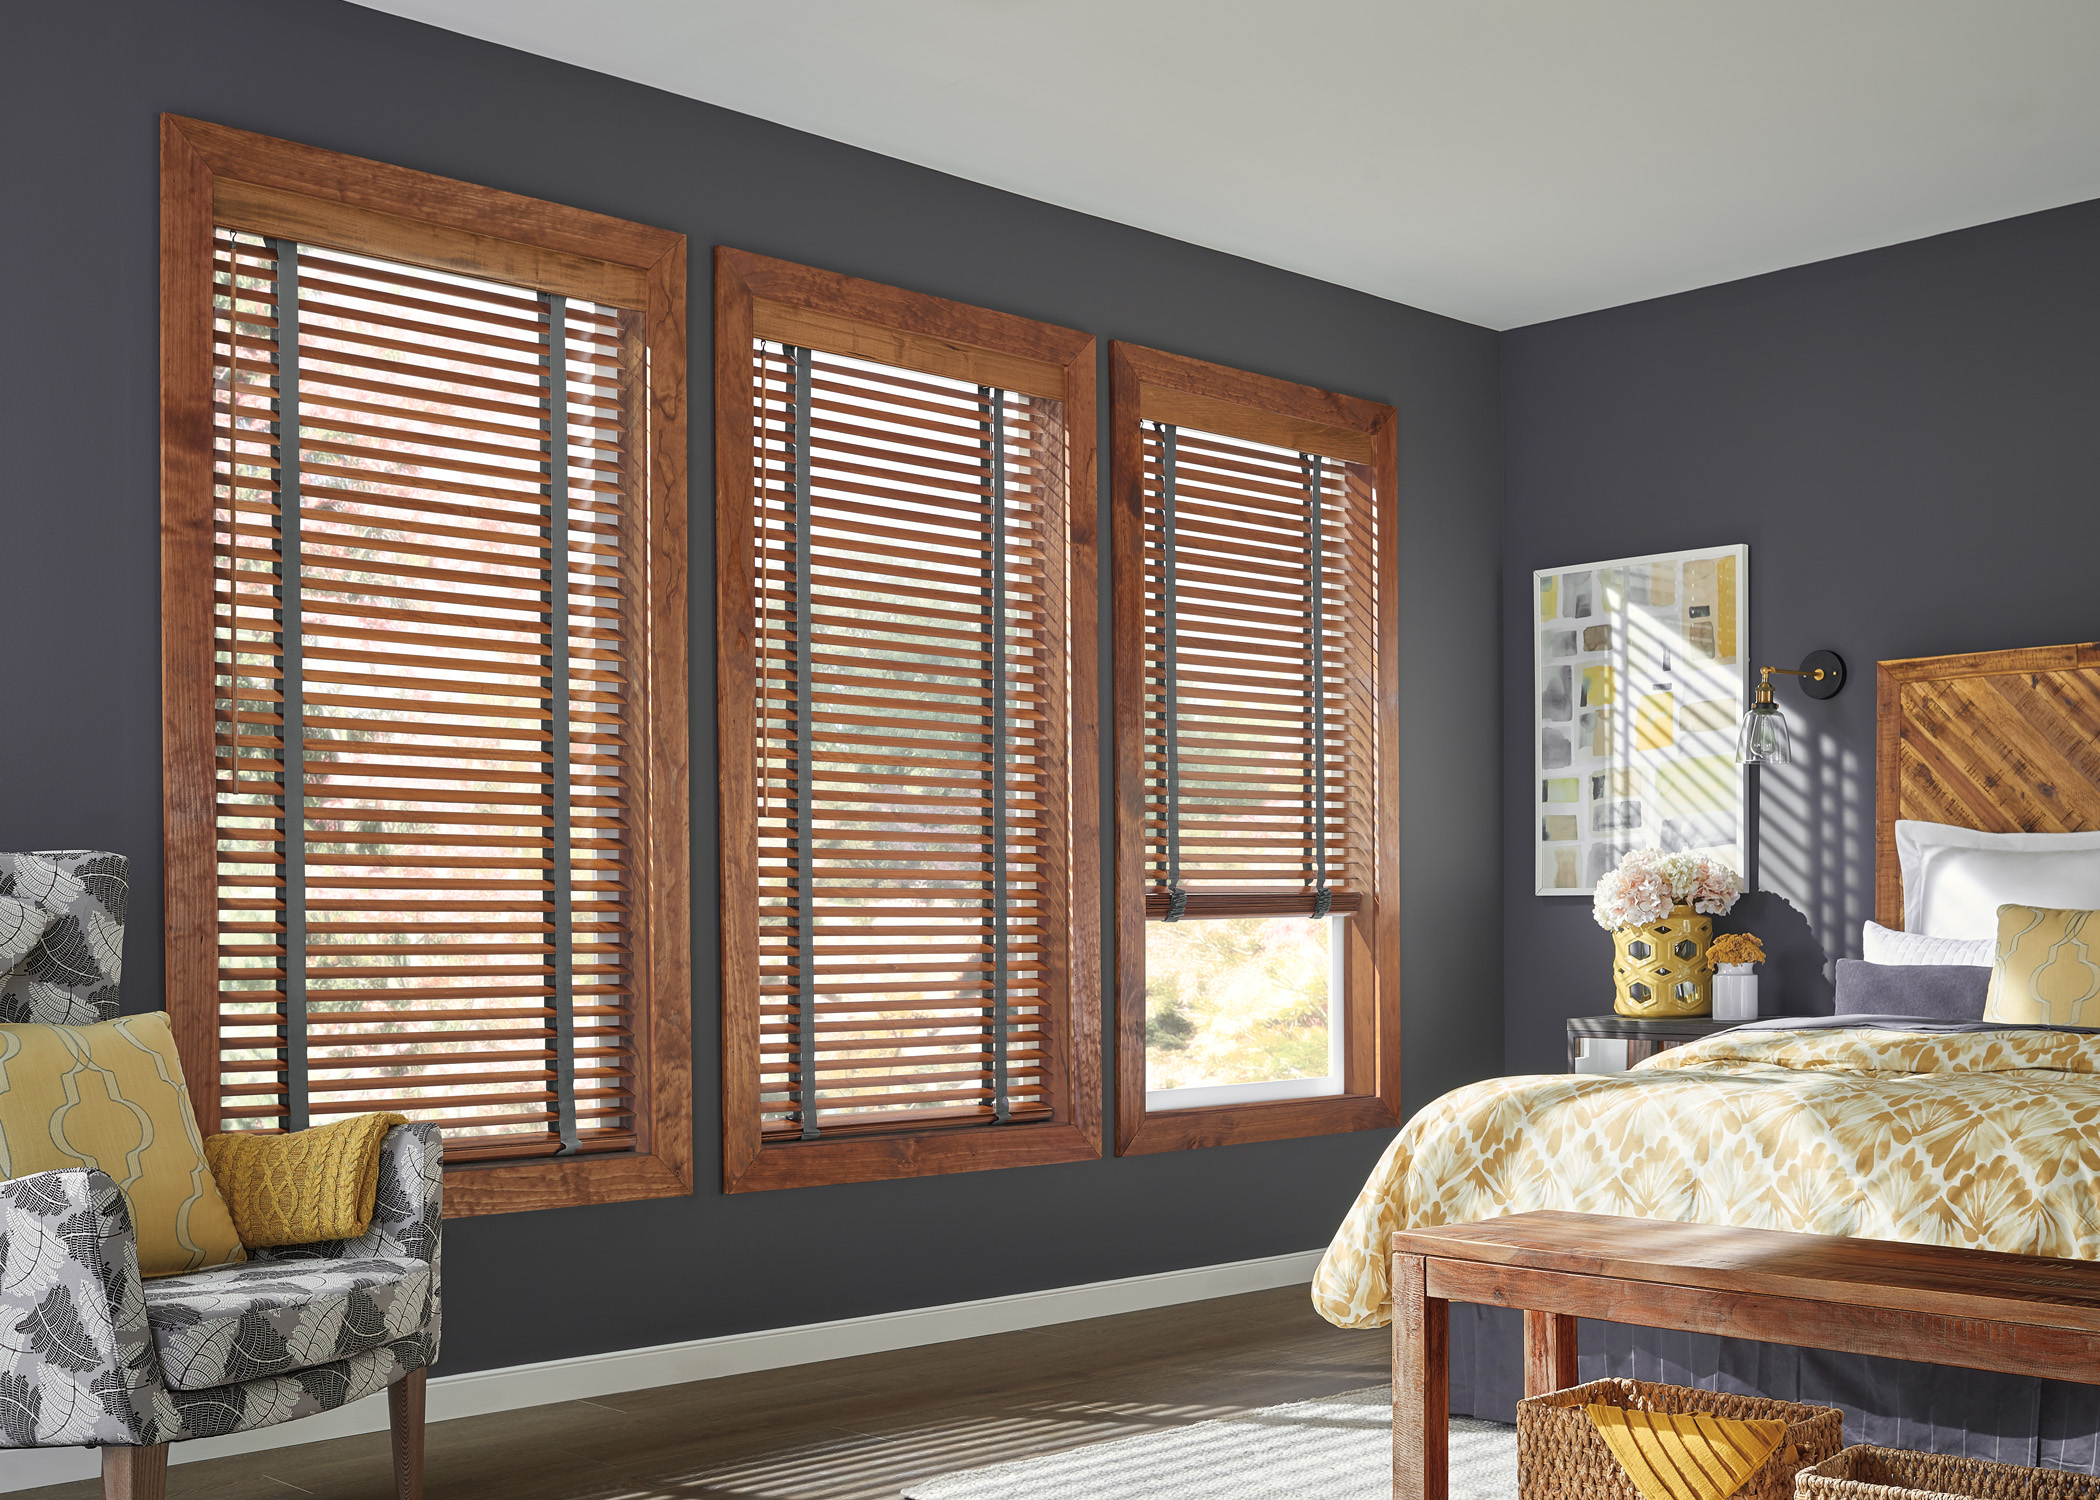 BLINDS - Shades are the perfect blend of form and function—they offer a wide range of colours, textures, styles, and they provide you with precise light control, easy operation, and protection from excess heat.